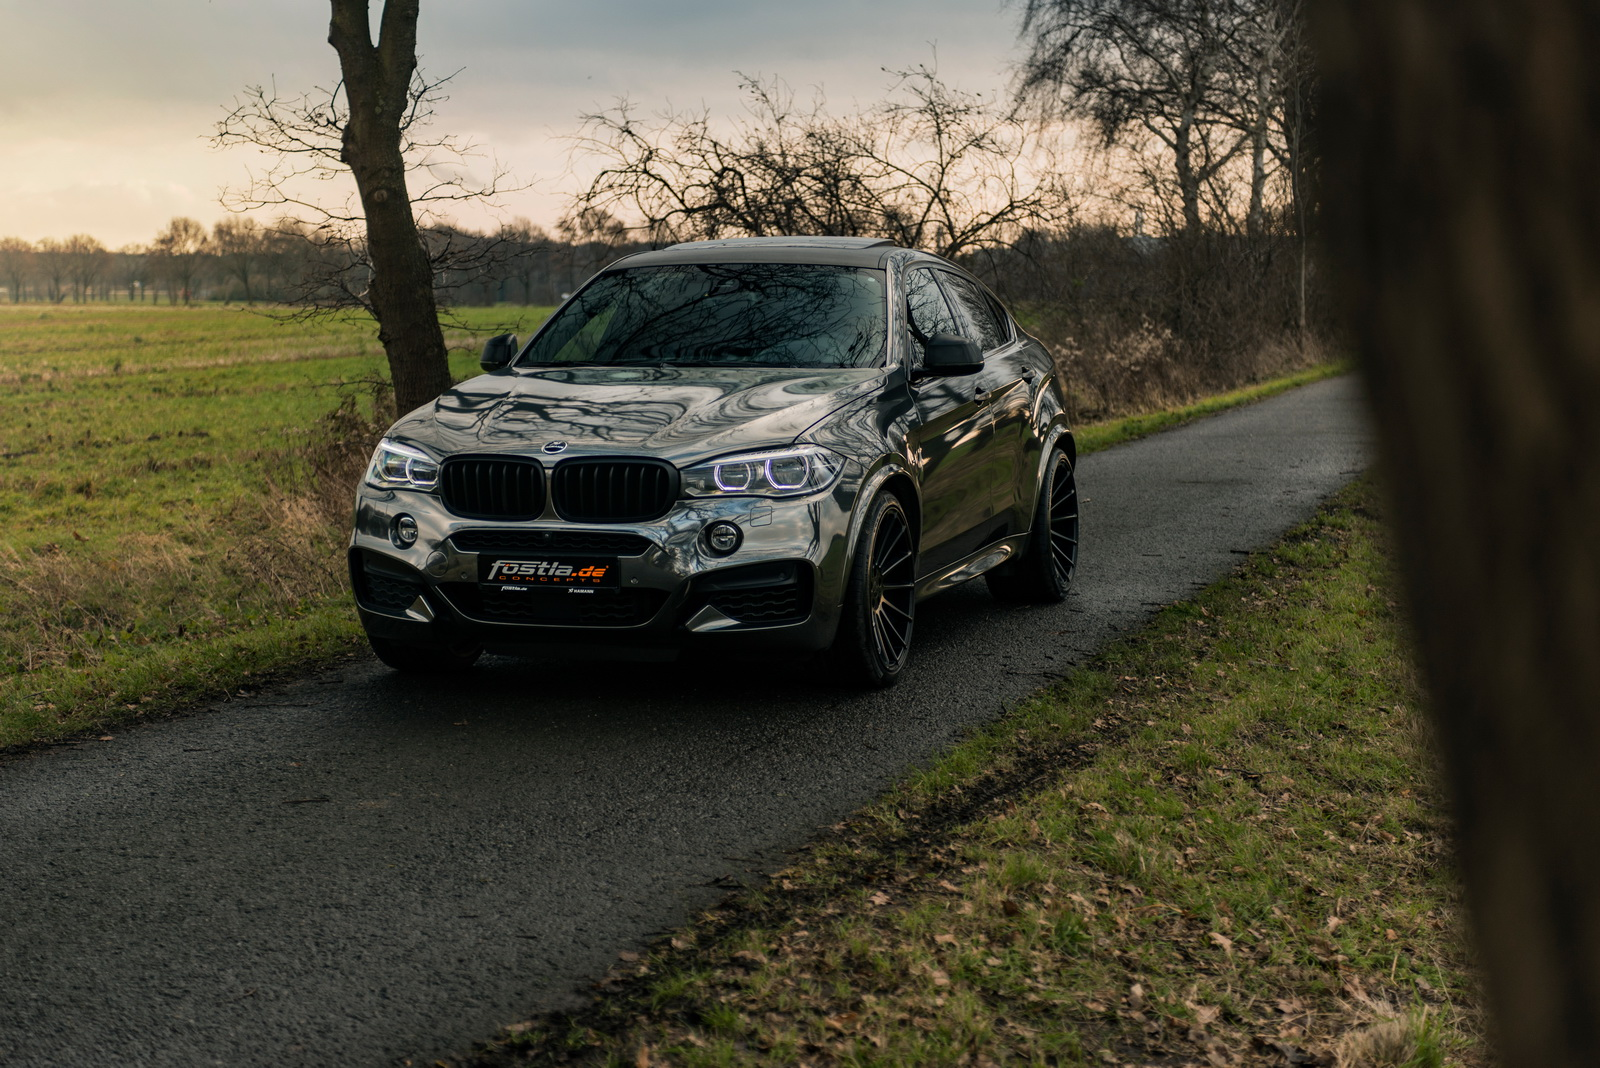 Some people believe there's nothing you can improve in the already perfect BMW X6 M50d. The car tuning atelier Fostla has provided a suggestion, nonetheless